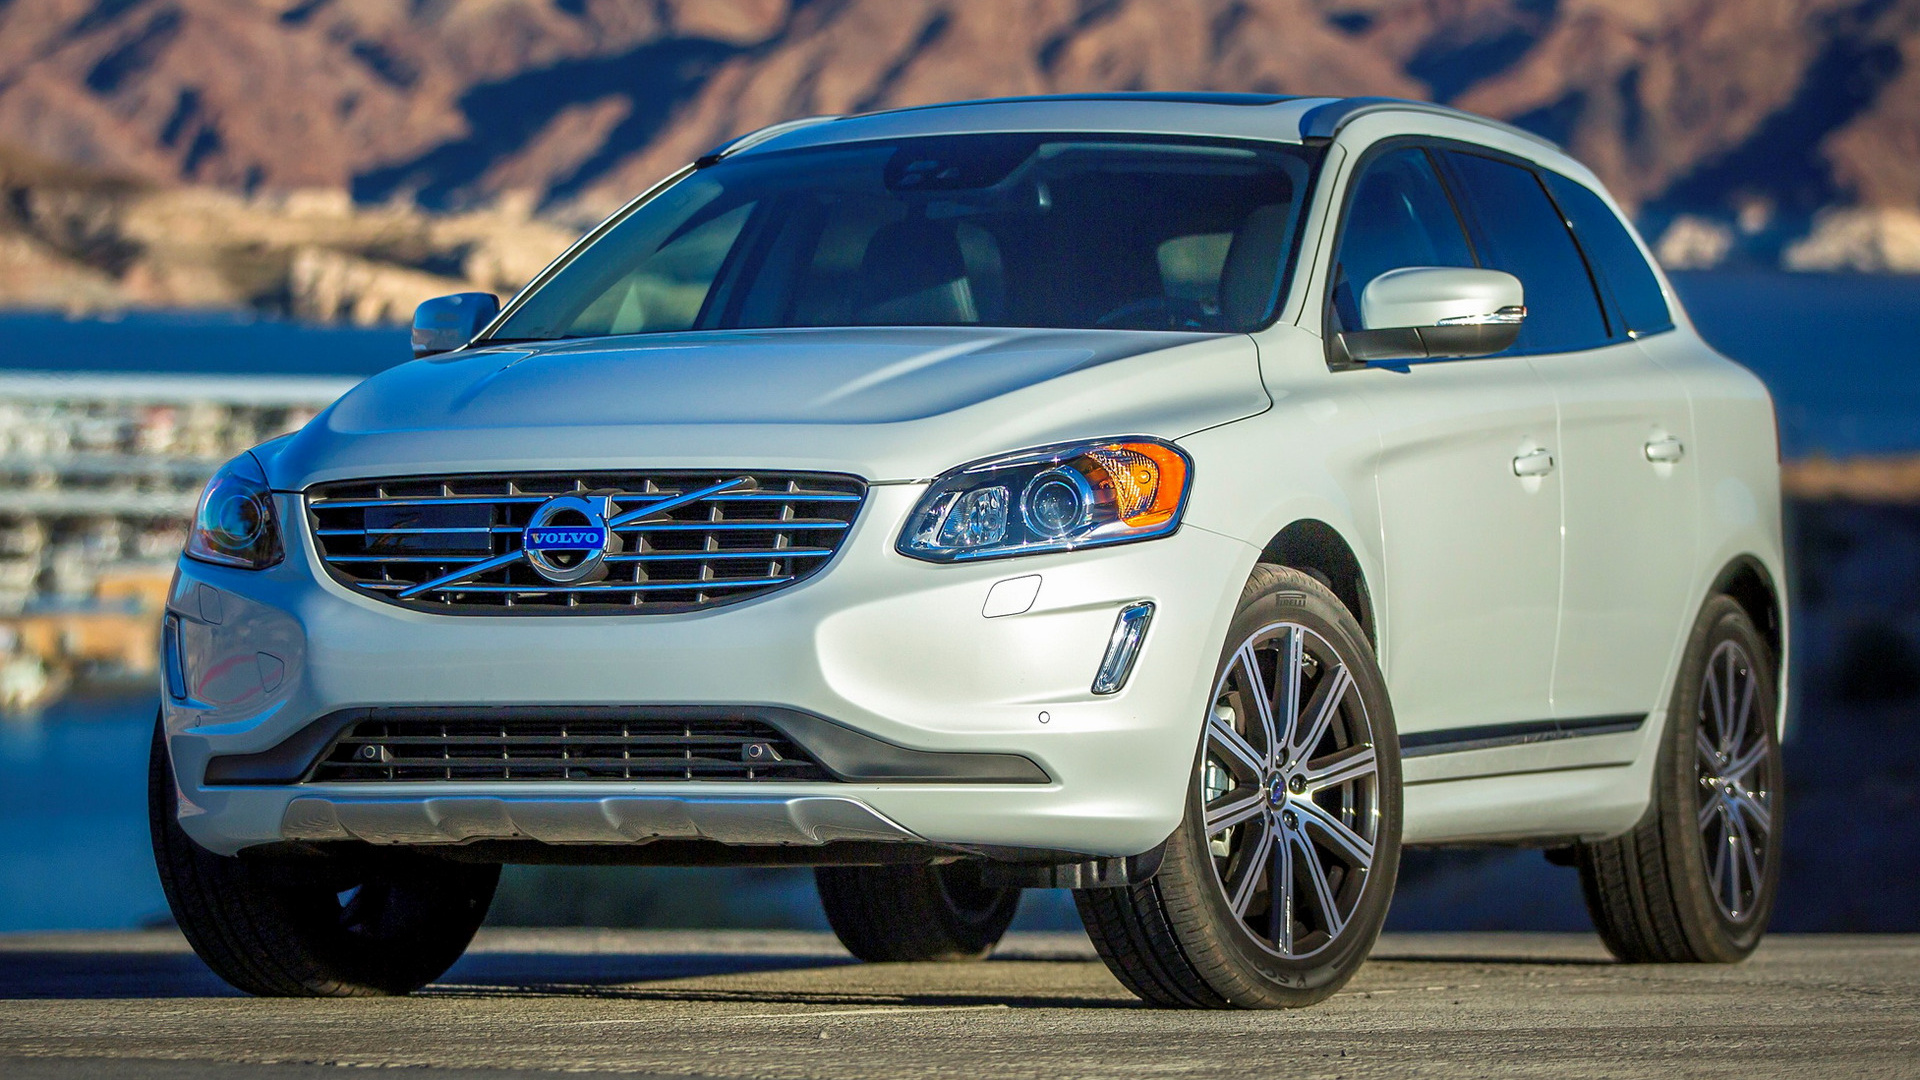 volvo xc60 2013 us wallpapers and hd images car pixel. Black Bedroom Furniture Sets. Home Design Ideas